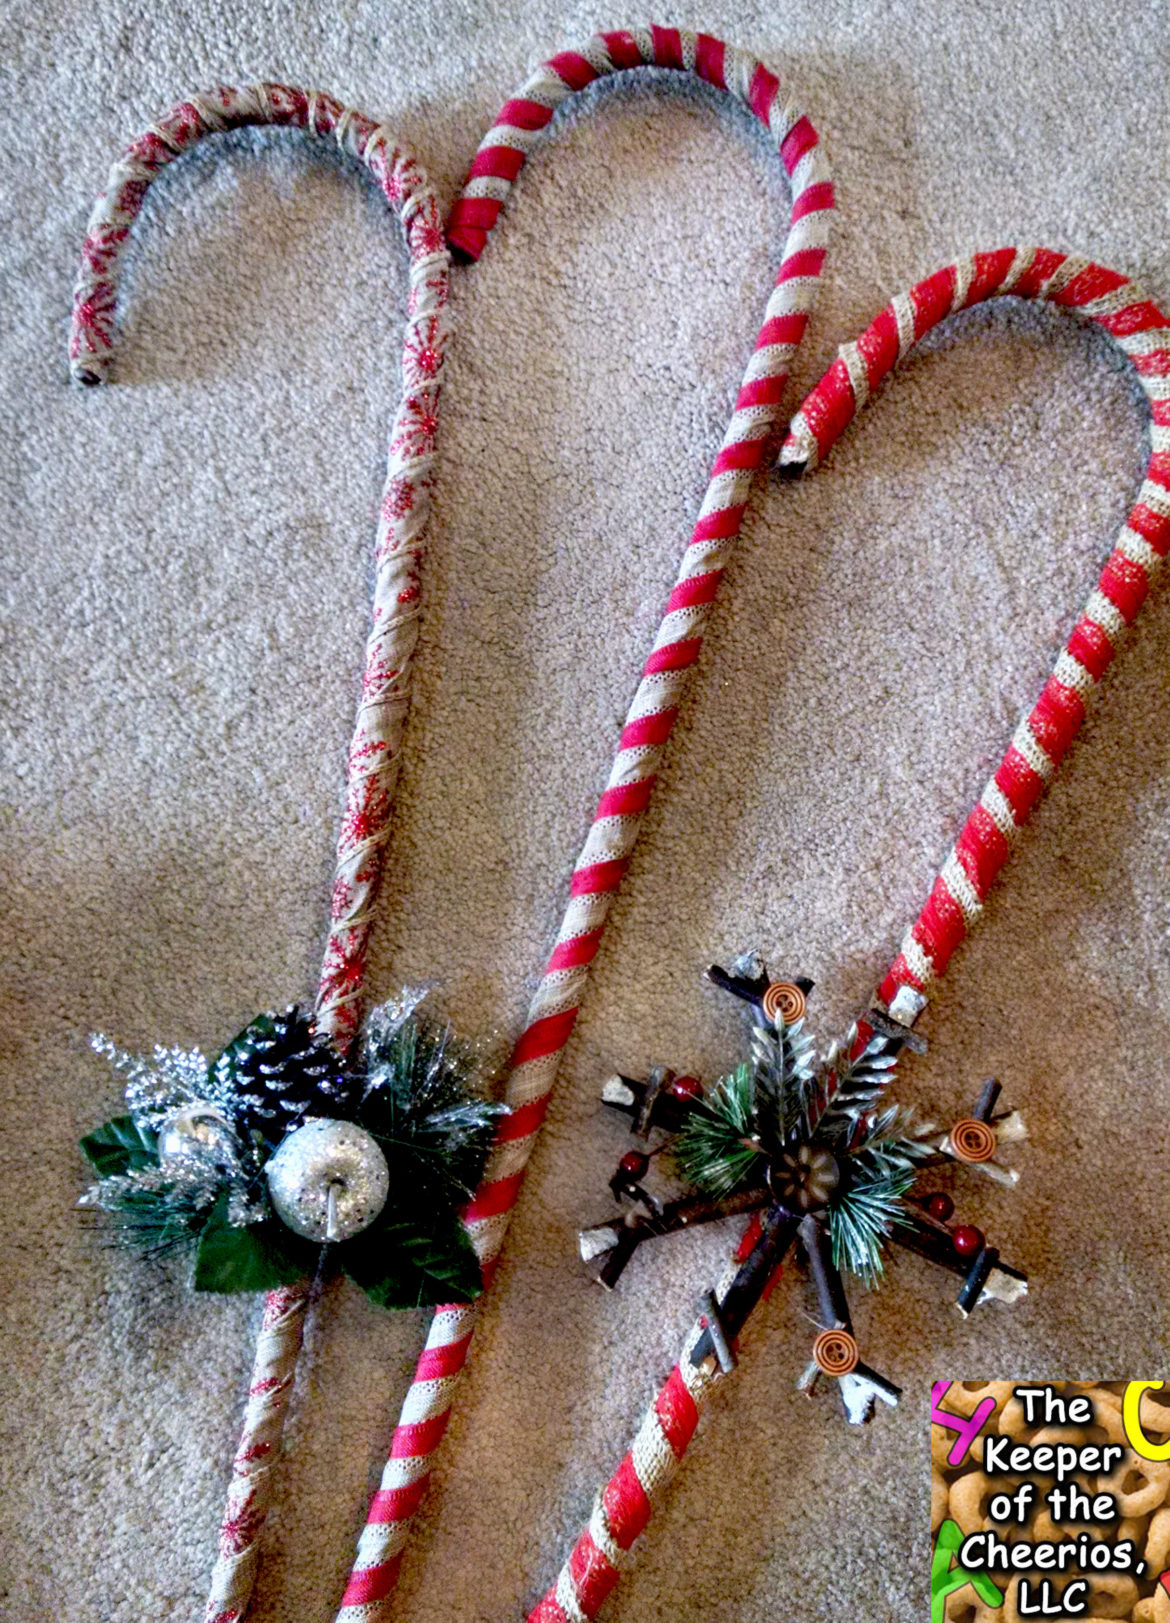 burlap-wrapped-candy-canes-9